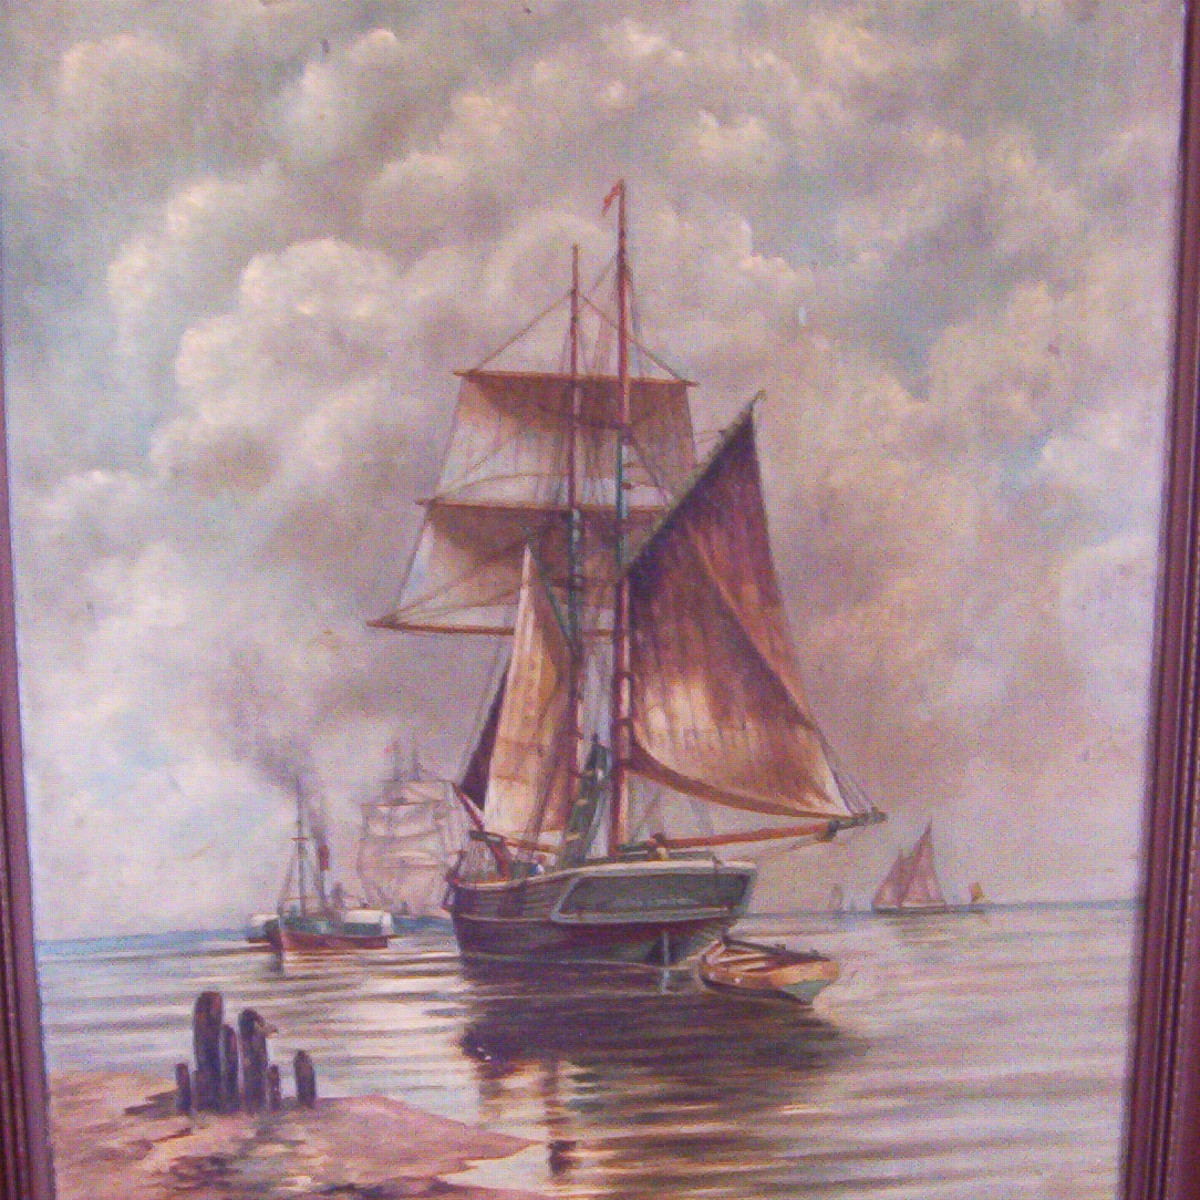 Sailing ship by Alfred Cookman Leach, photo by Dolores Monet